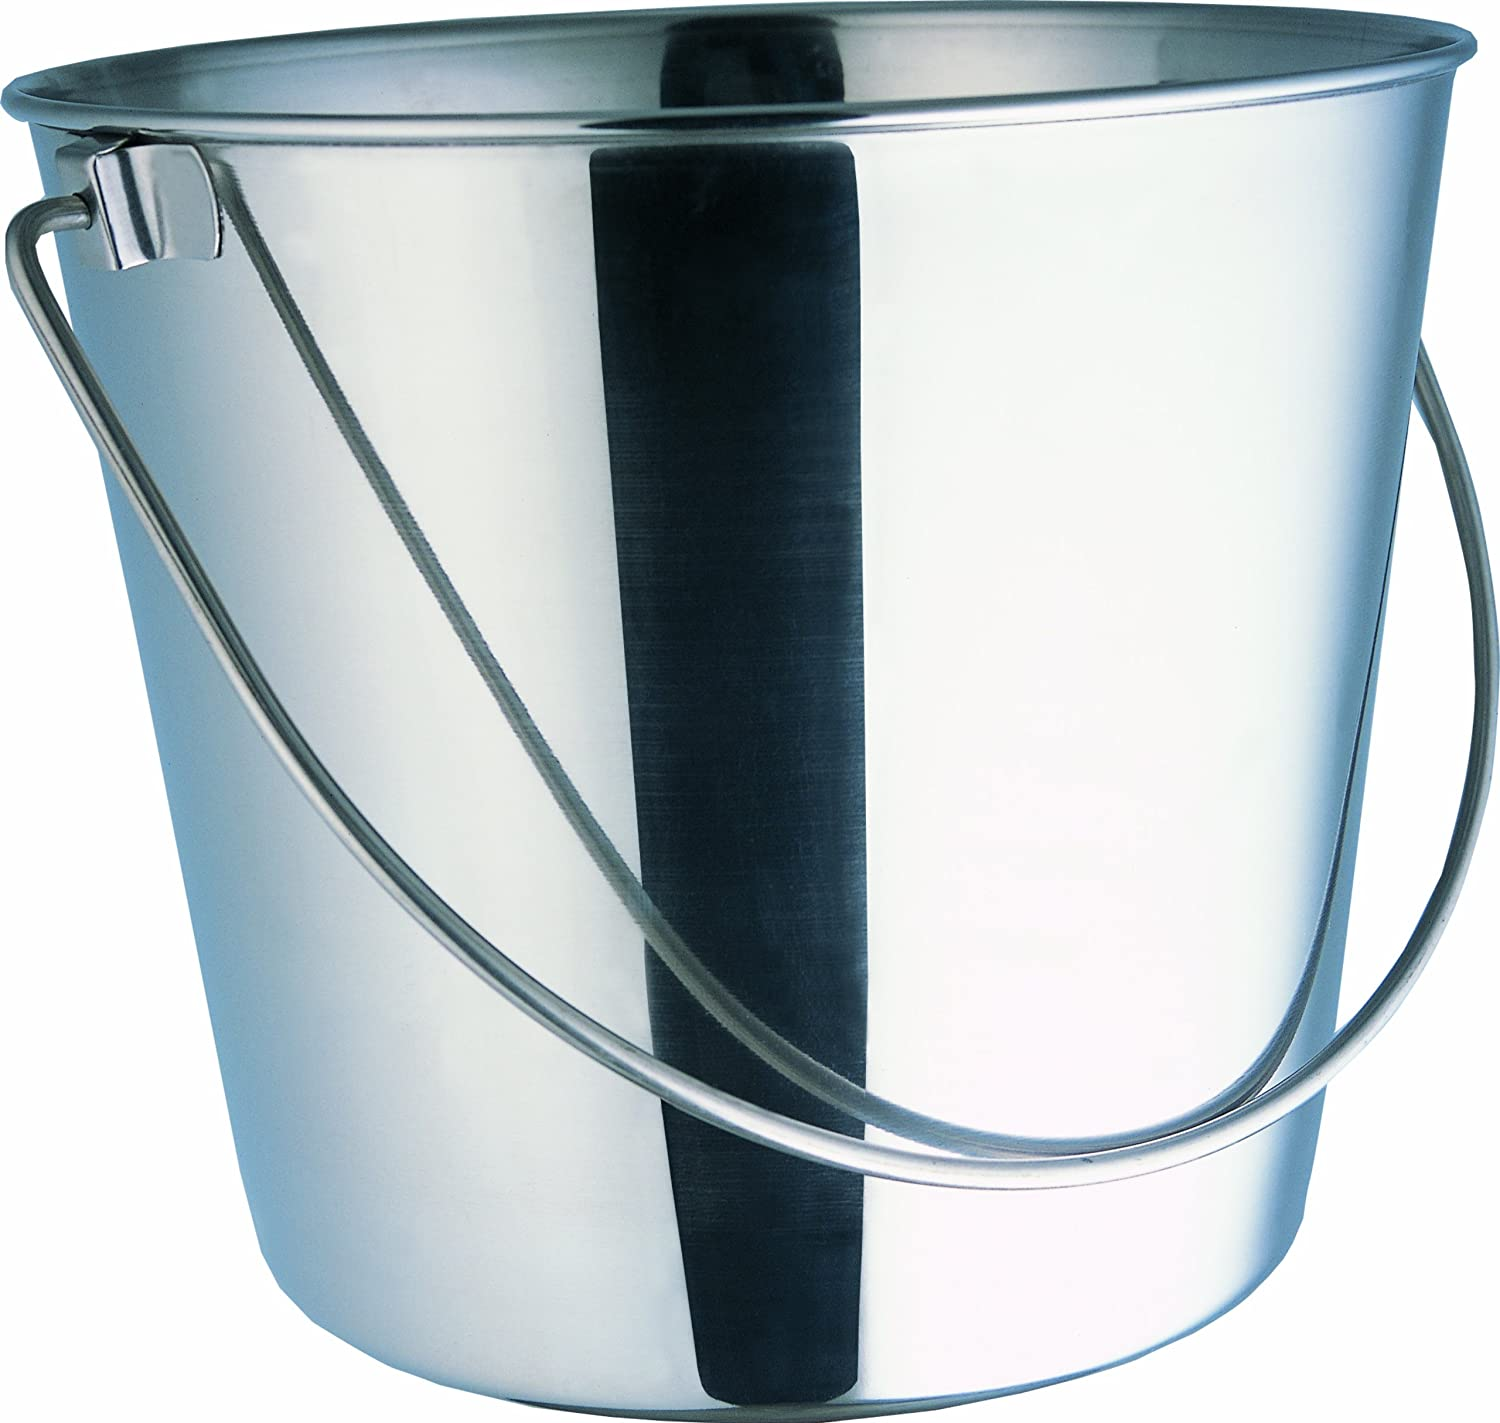 Indipets Heavy Duty Stainless Steel Pail - 2 Quart - Durable Dog Food and Water Storage